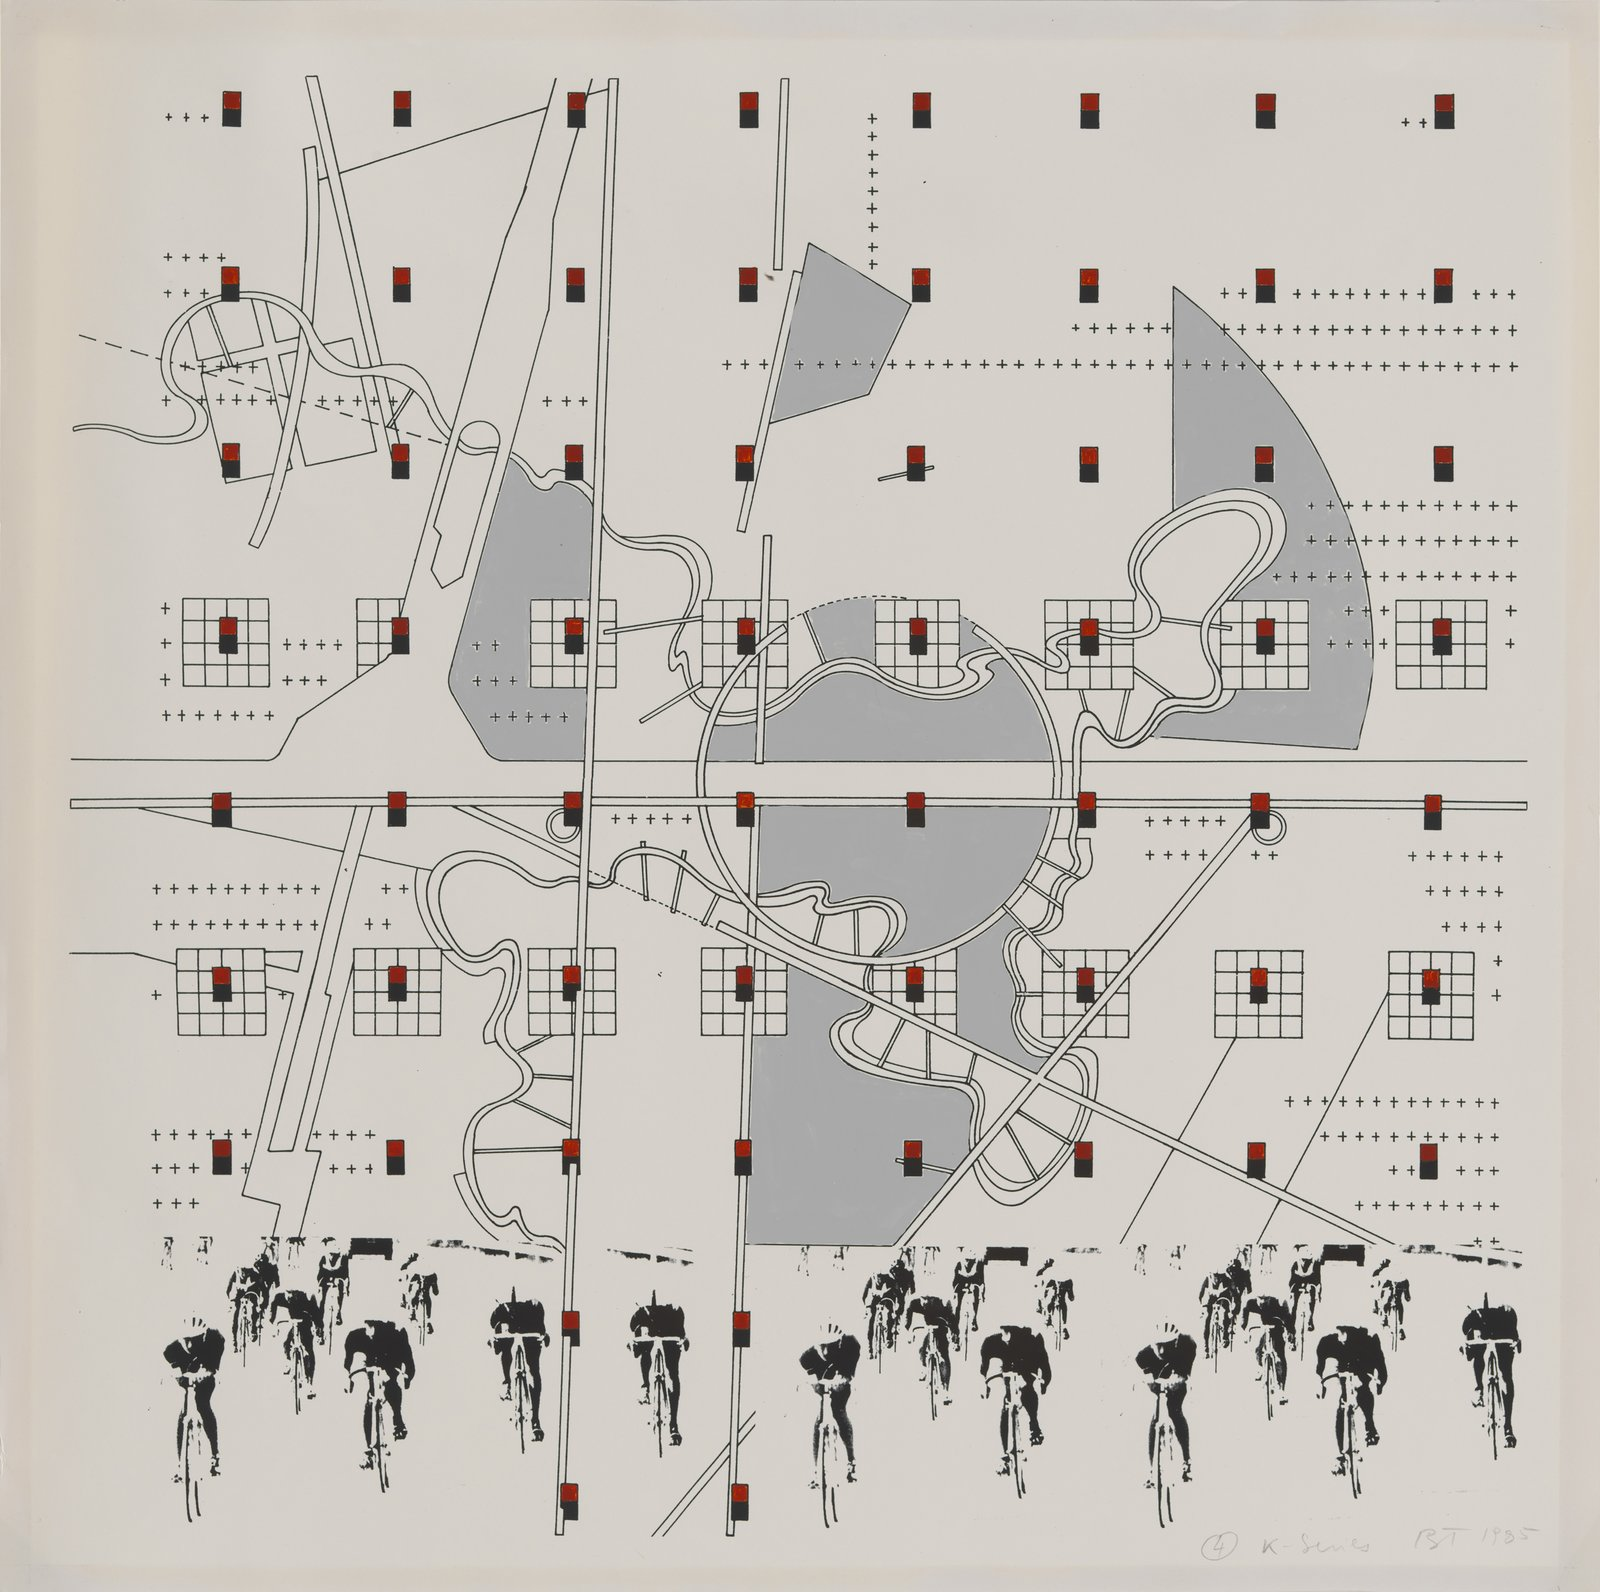 Bernard Tschumi, #4 K Series, 1985. Study for La Case Vide: La Villette, Folio VIII, 1985.  Photo 3 of 8 in Early Drawings by Famous Architects